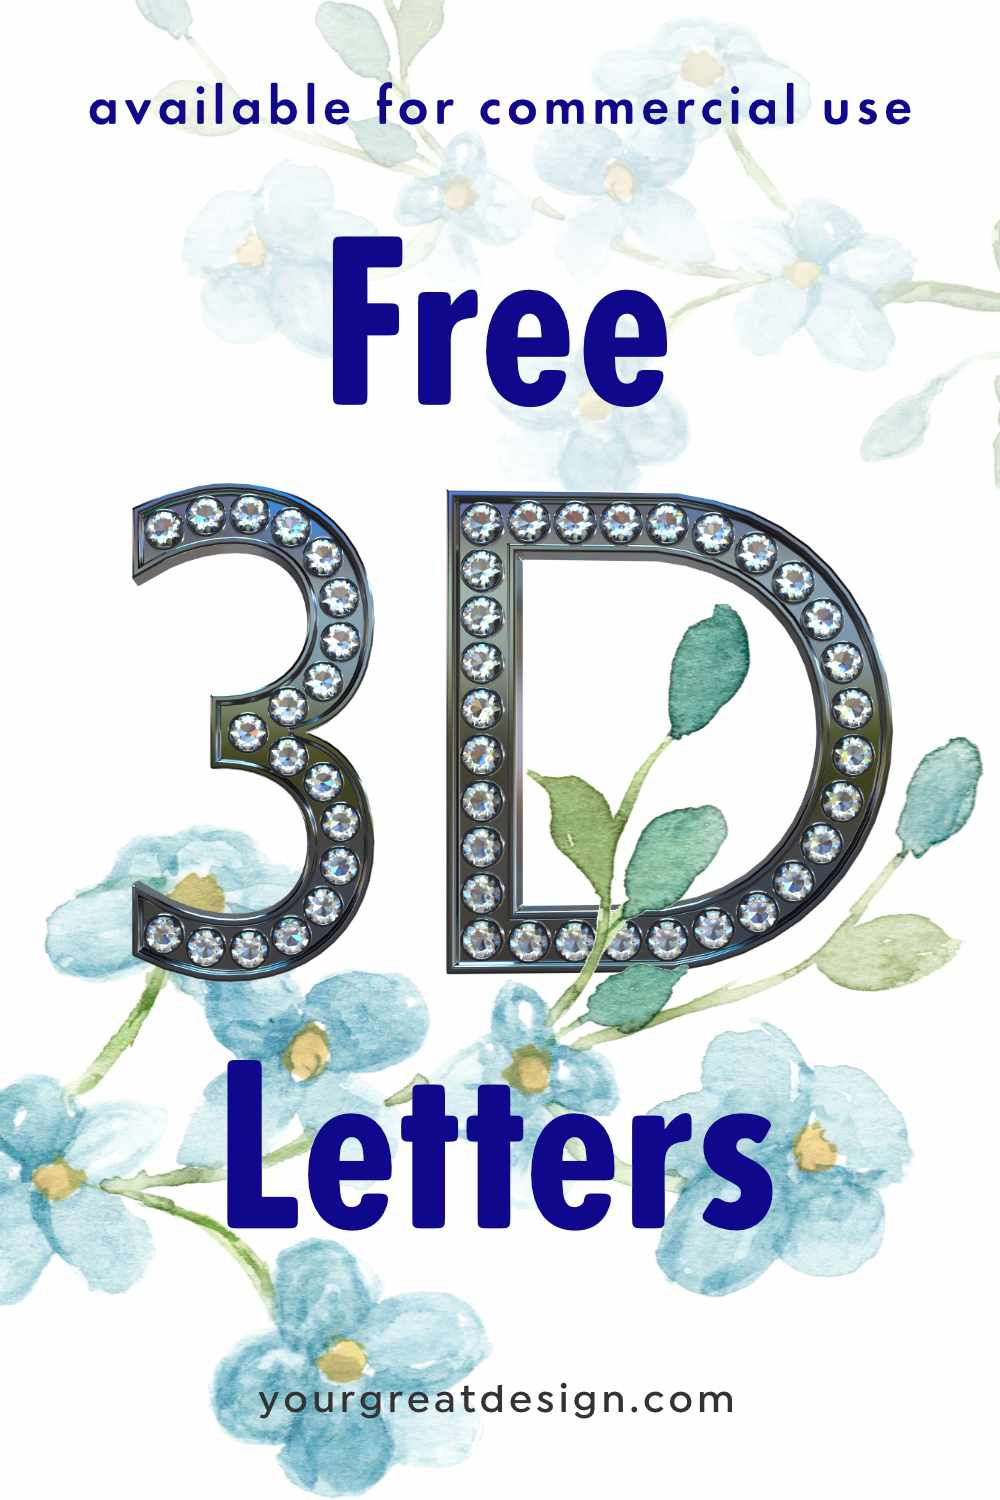 Freebie 3D Letters - available for commercial use